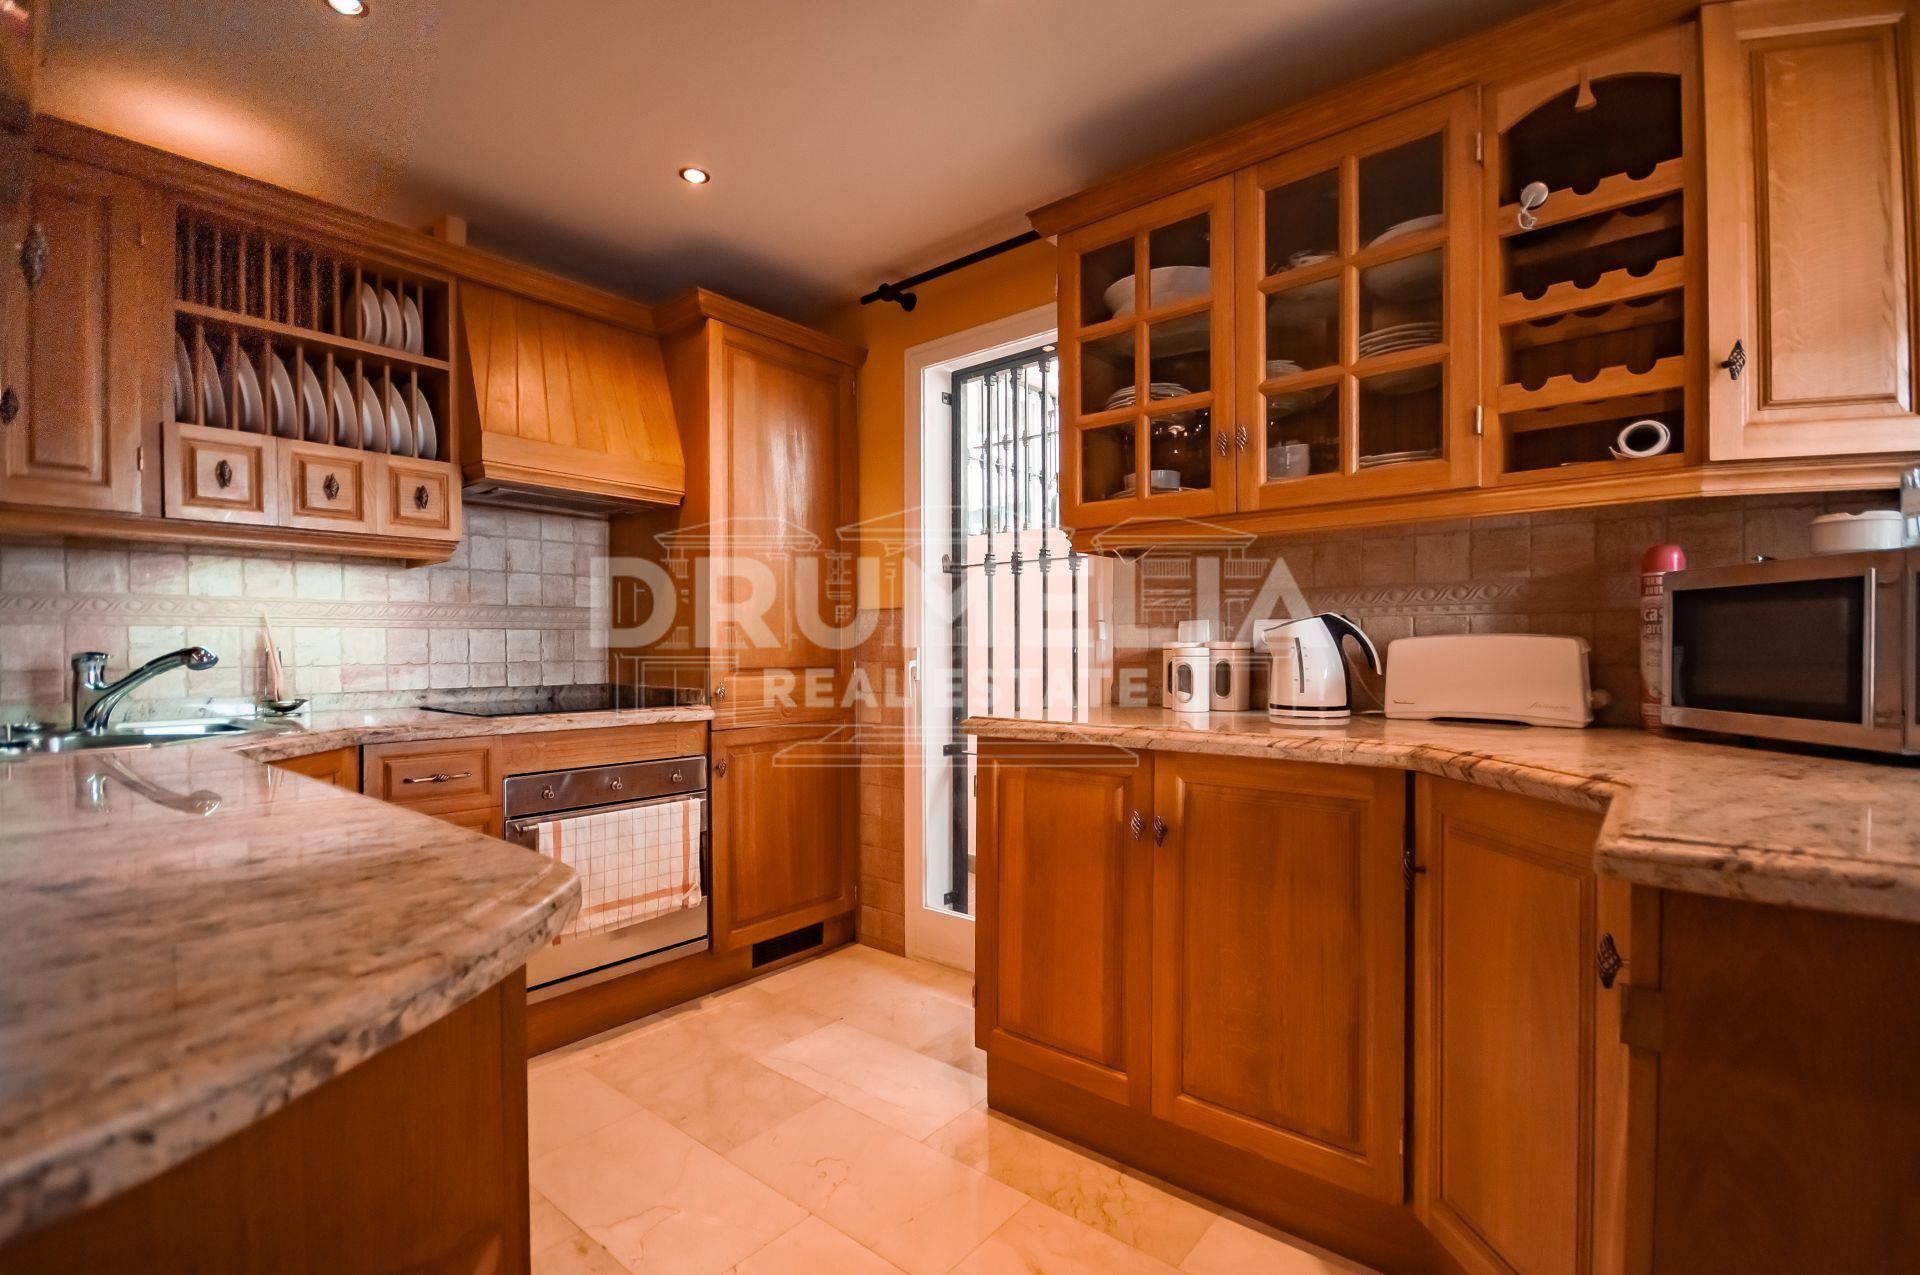 Benahavis, Attractive Stylish Mediterranean Townhouse in La Quinta, Benahavis